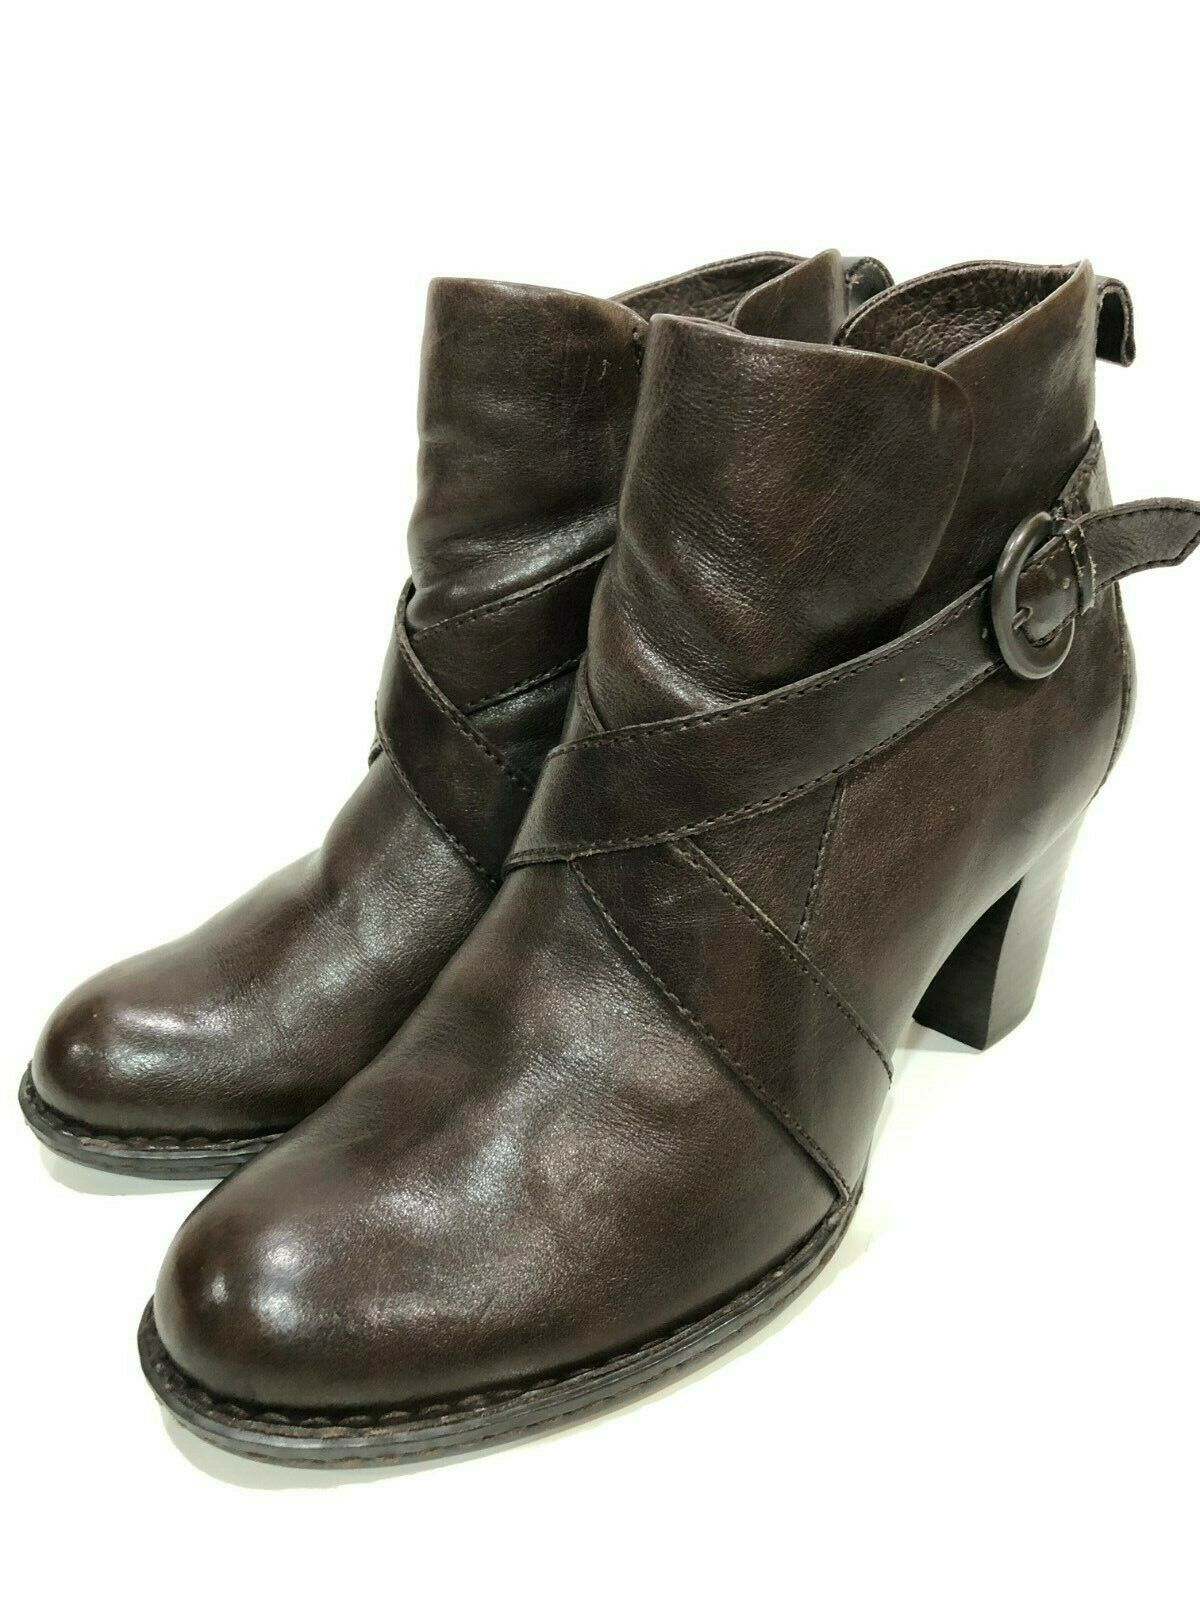 Born Women's Brown Leather Zip Boots Size 9.5 M